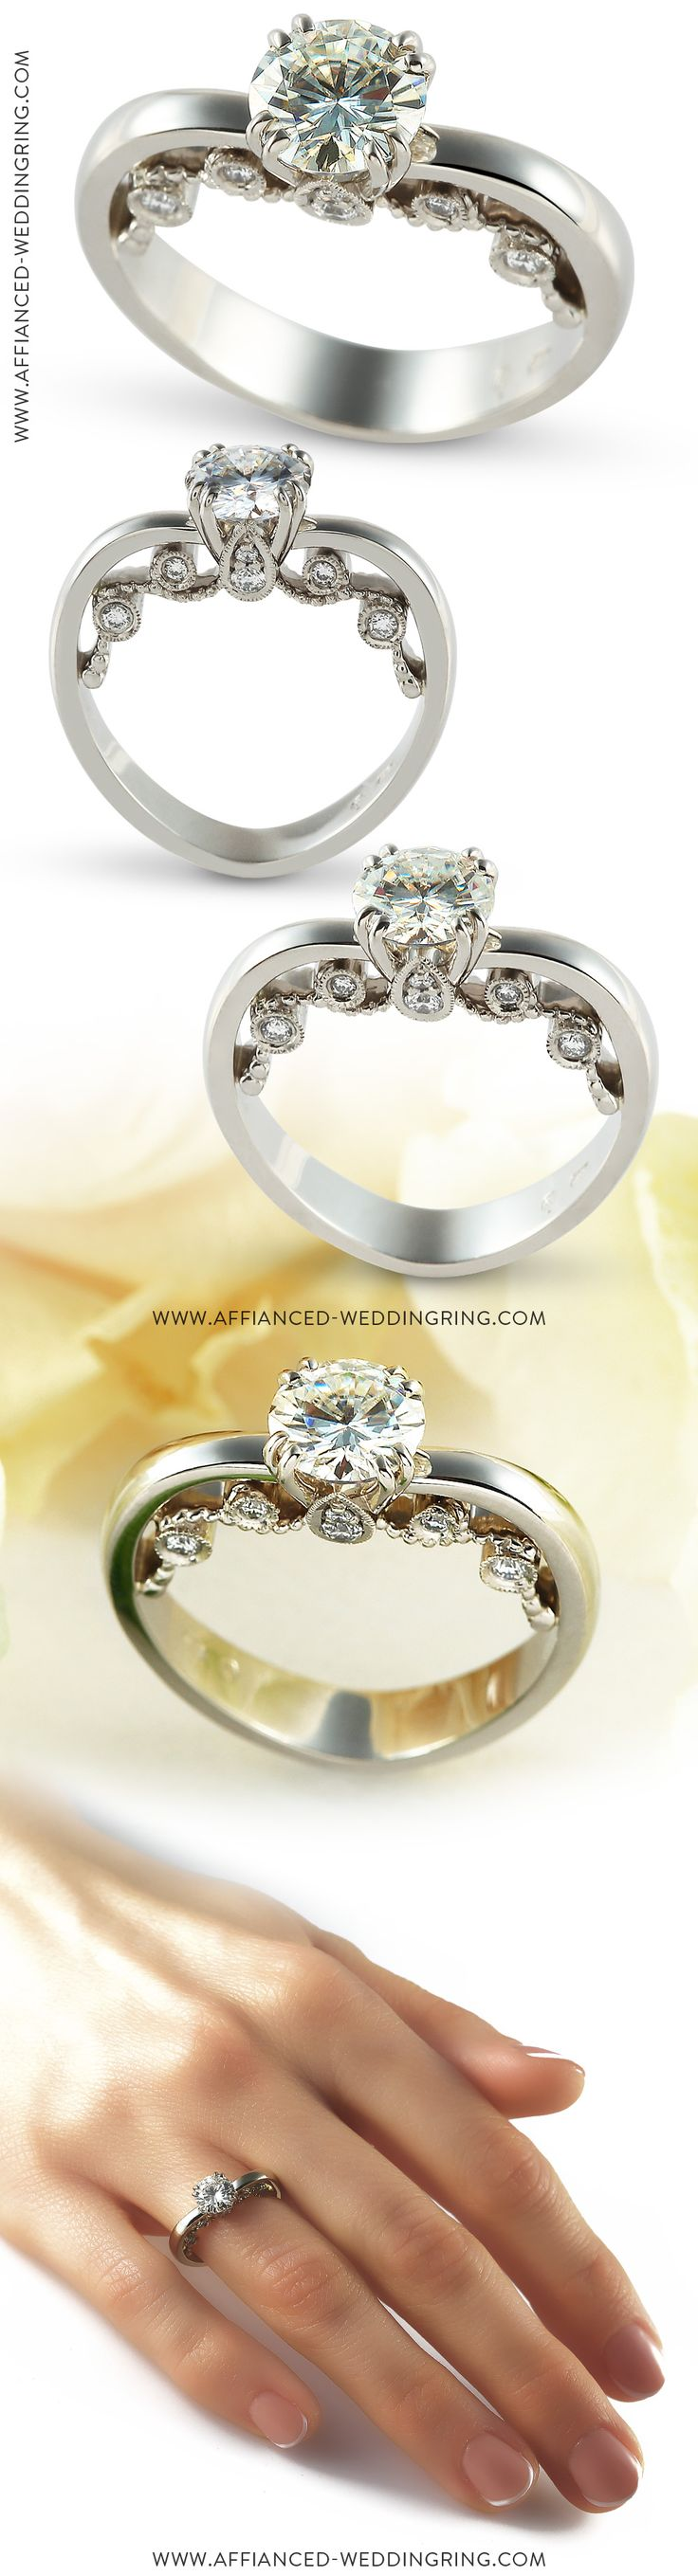 Elegant white gold engagement ring decorated with center 1 ct diamond and 12 pcs small diamonds.